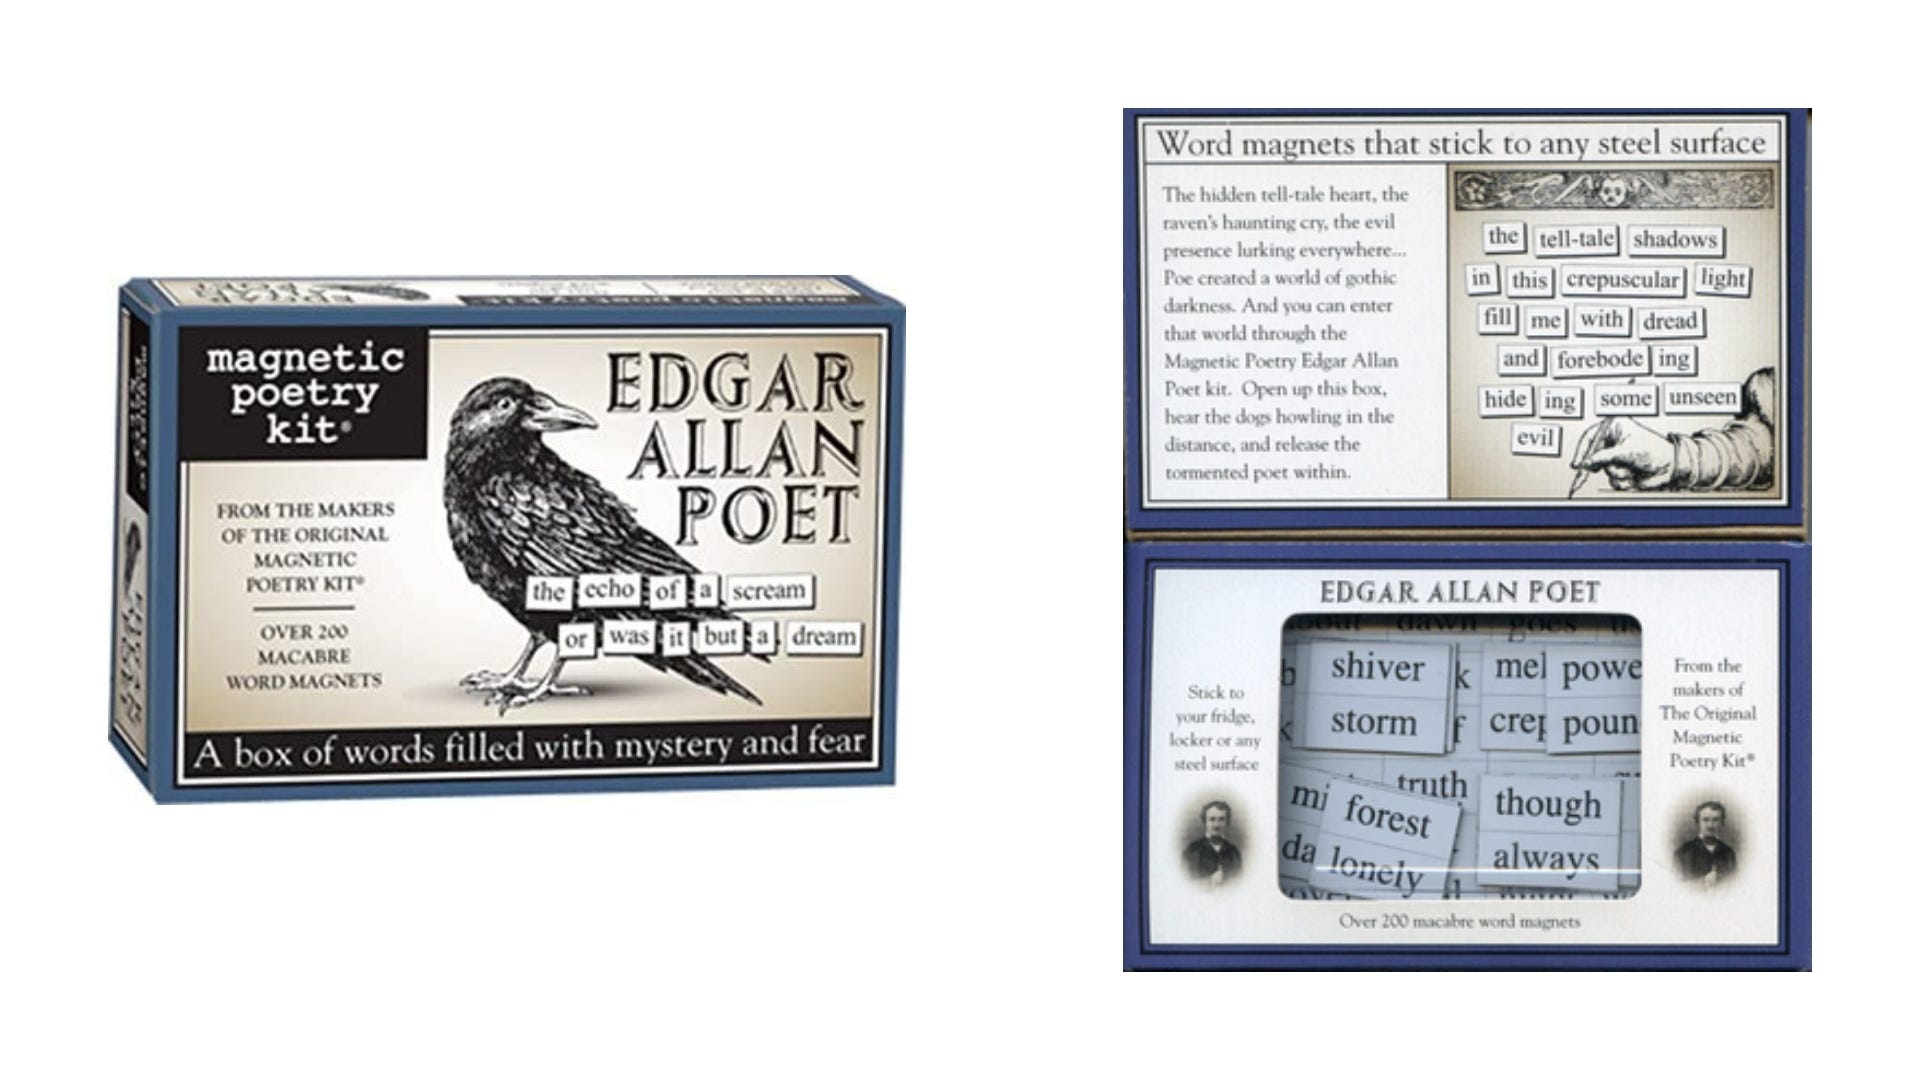 A front and inside view of the Edgar Allen Poet Magnetic Poetry kit